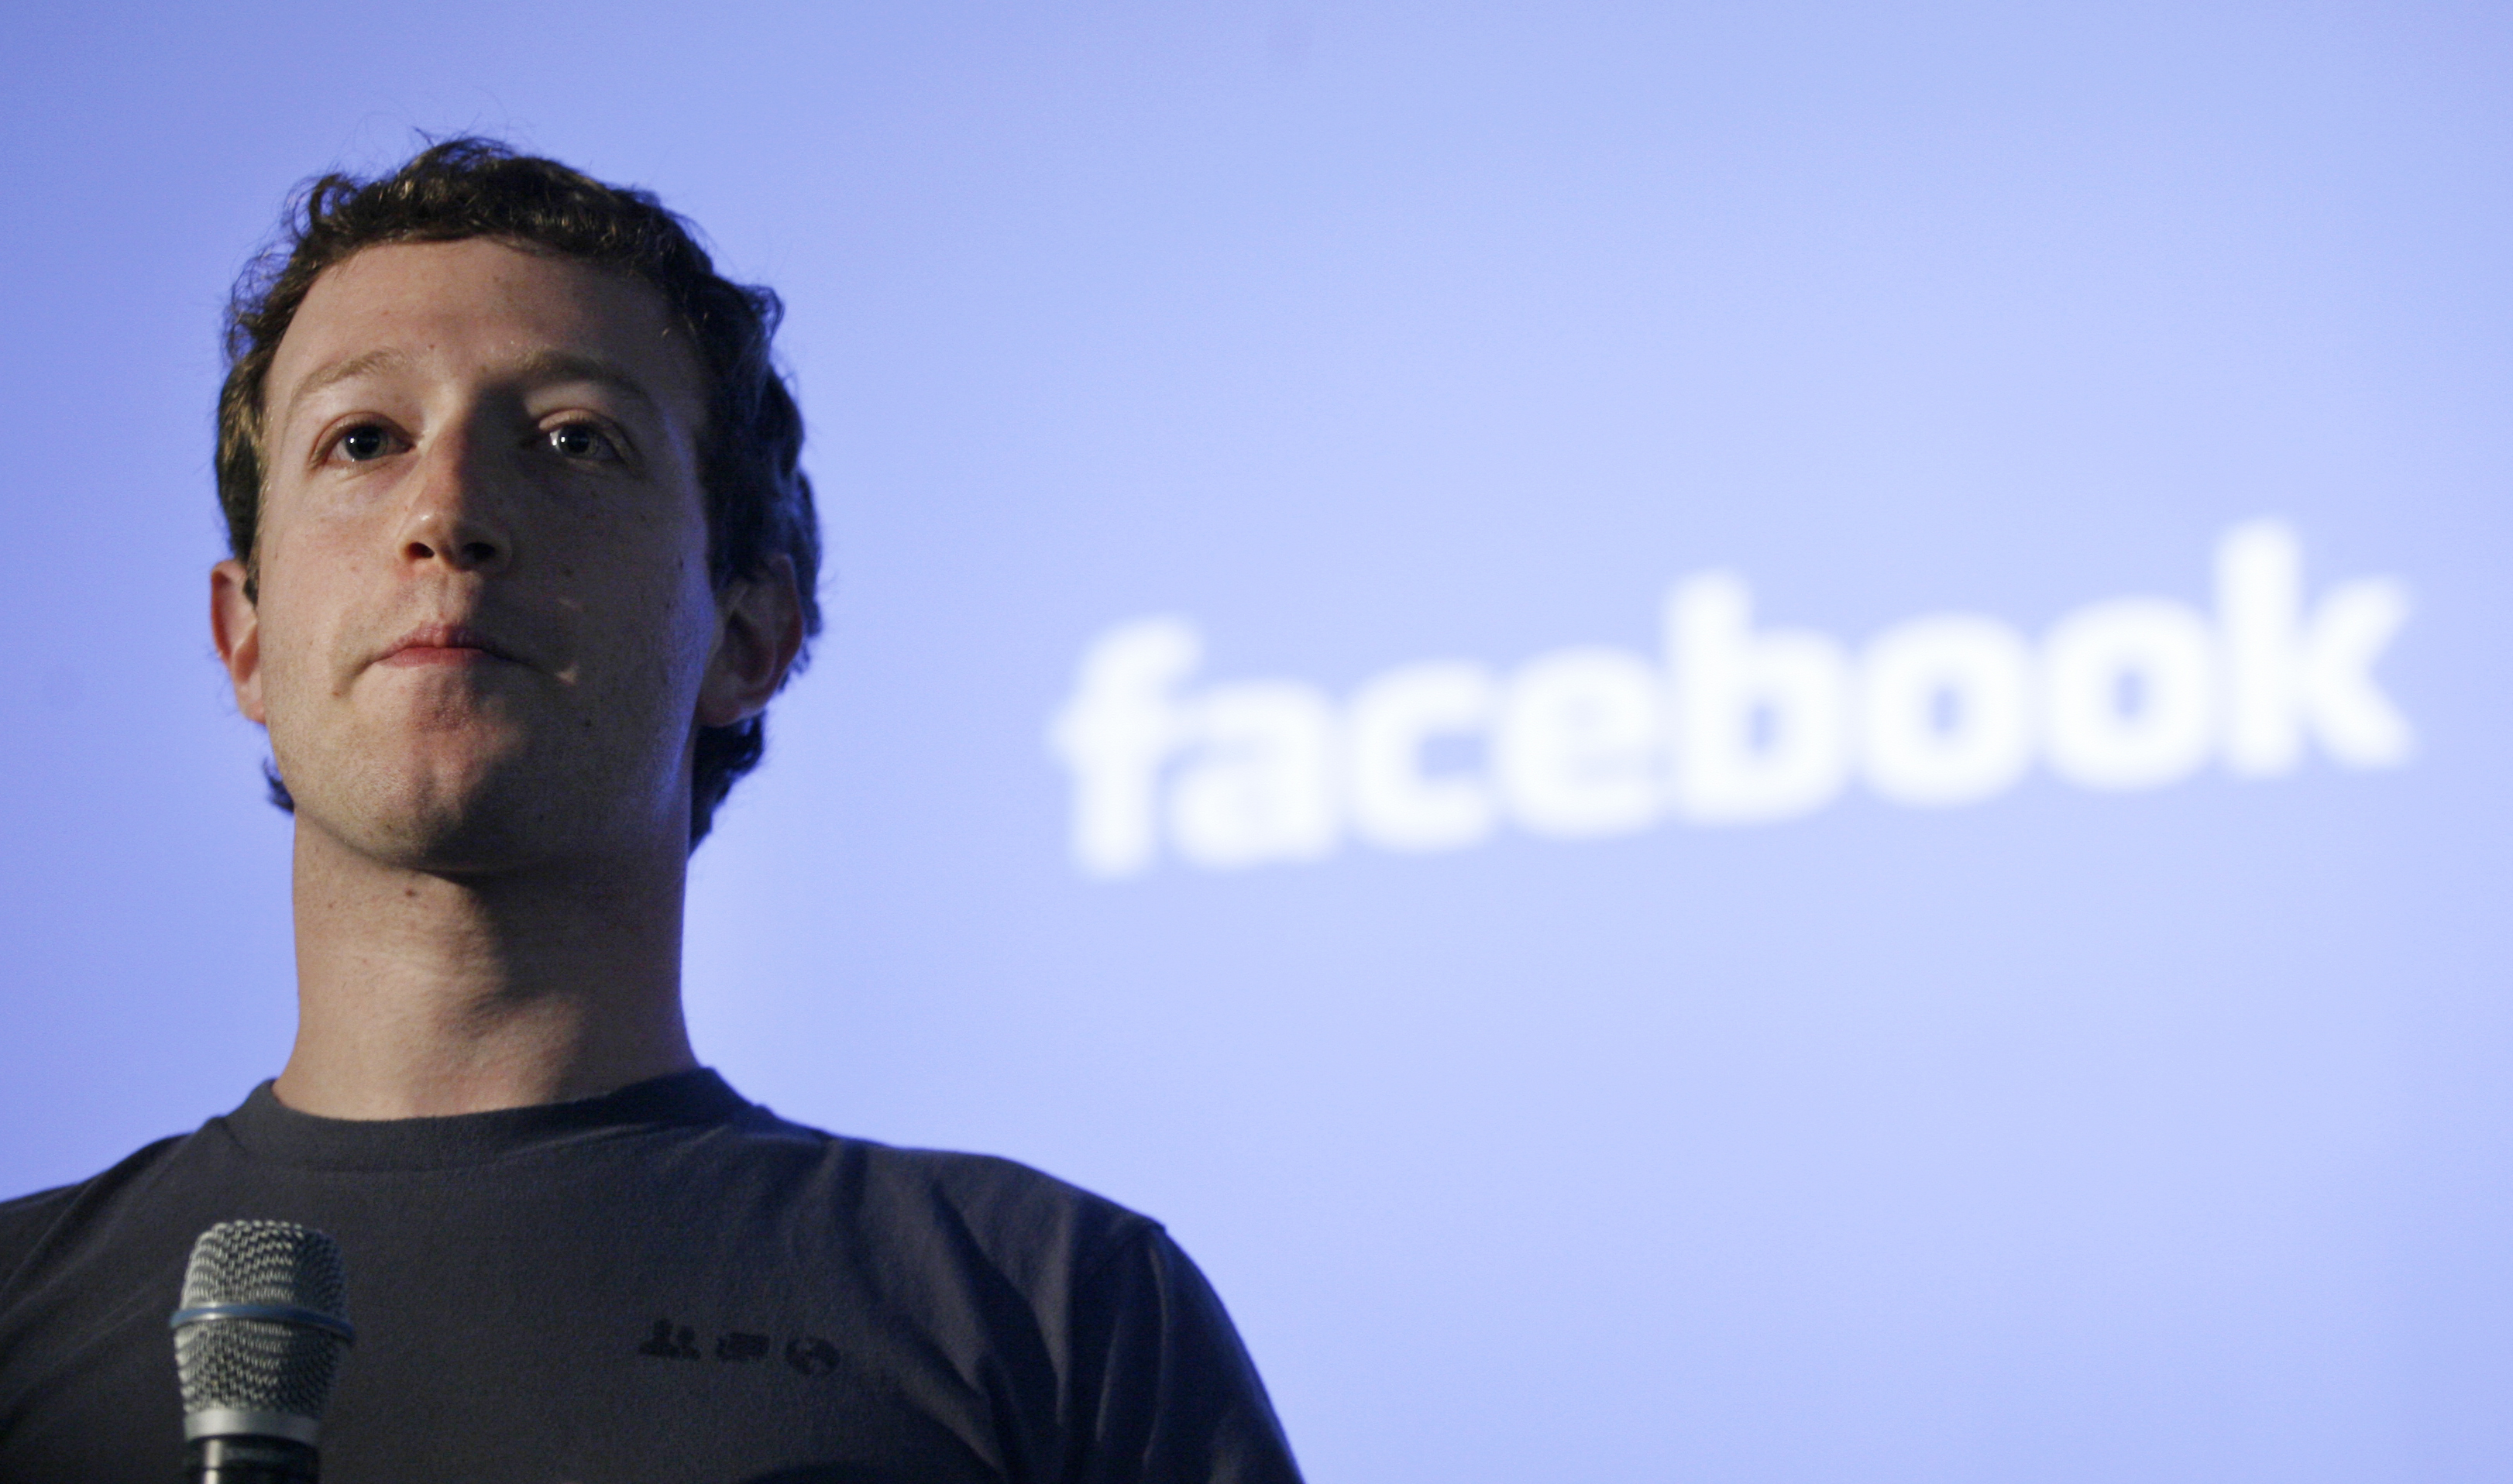 Facebook Needs to Focus, Not Purchase